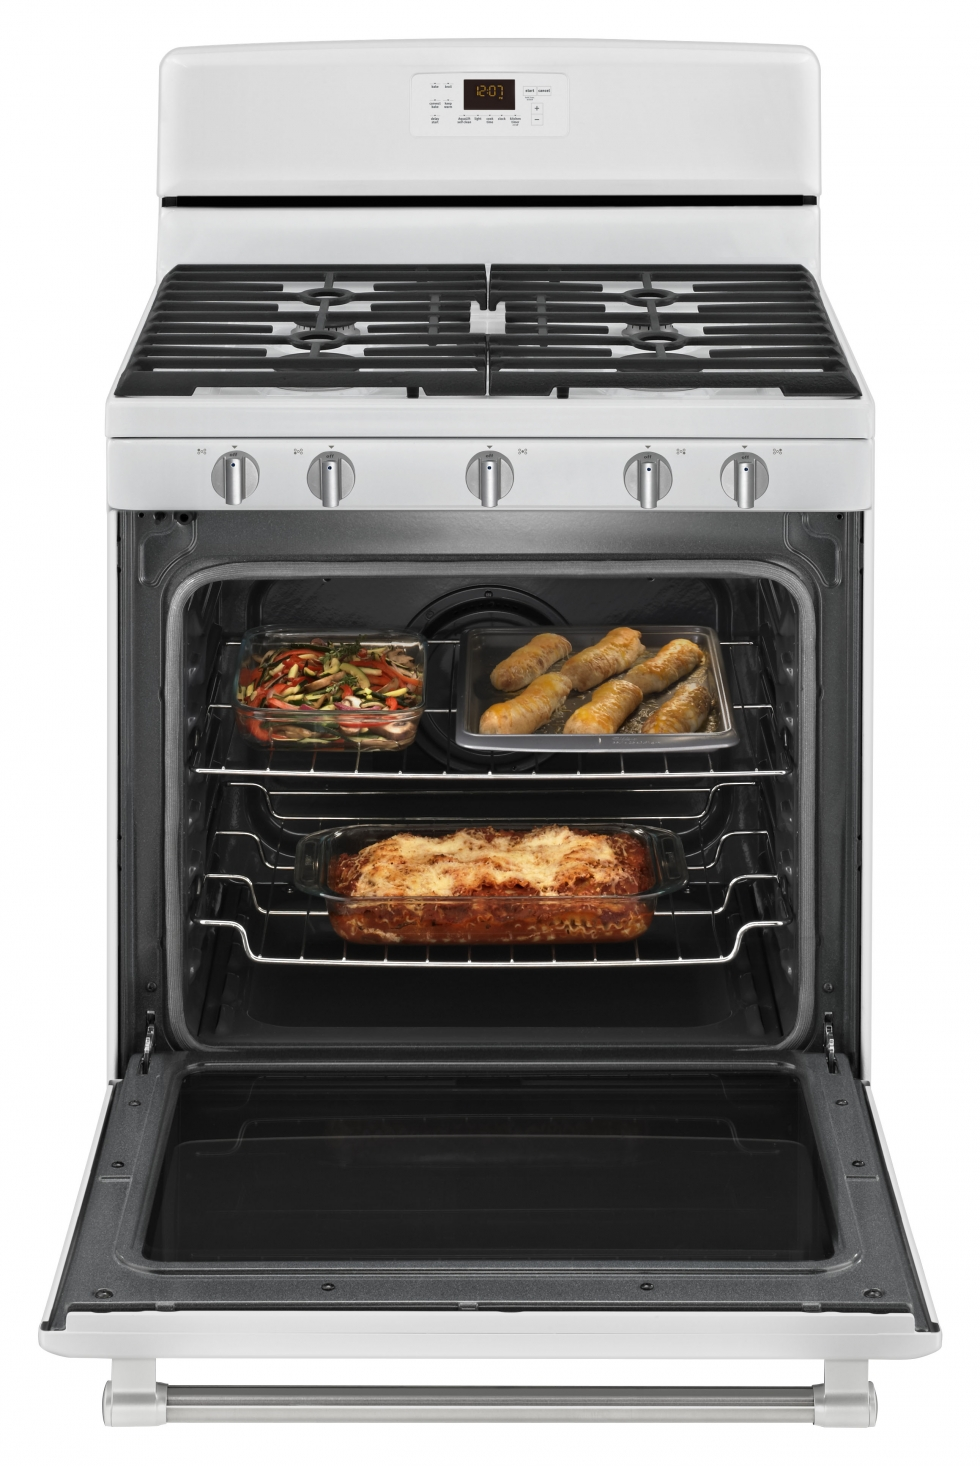 Maytag GAS RANGE WITH CONVECTION OVEN White with Stainless Start ...